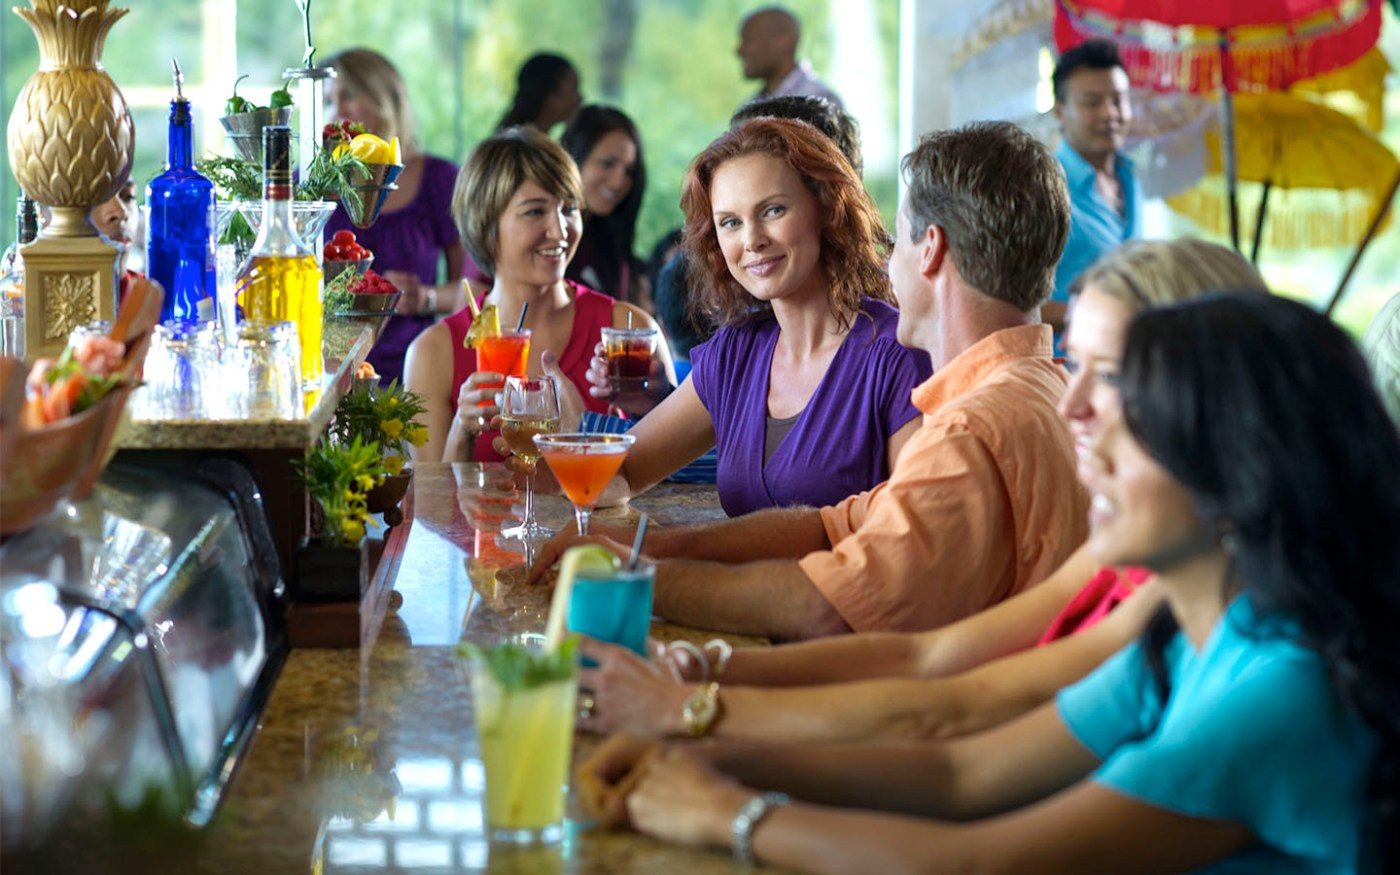 Unwind after a day at the parks with a happy hour at Loews Royal Pacific Resort.